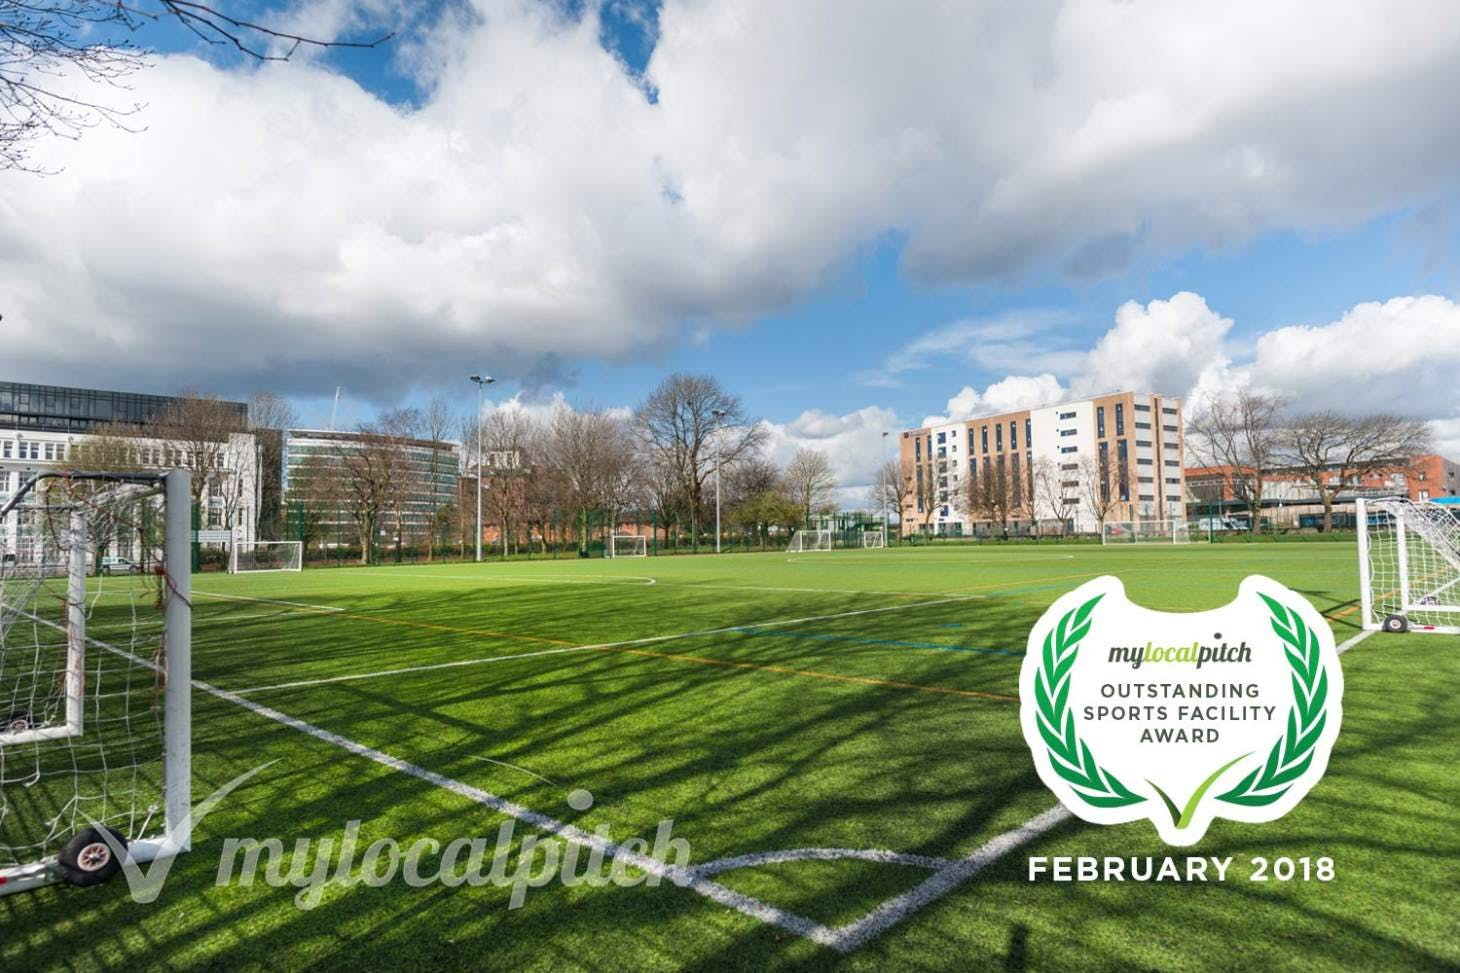 Ordsall Leisure Centre 11 a side | 3G Astroturf football pitch